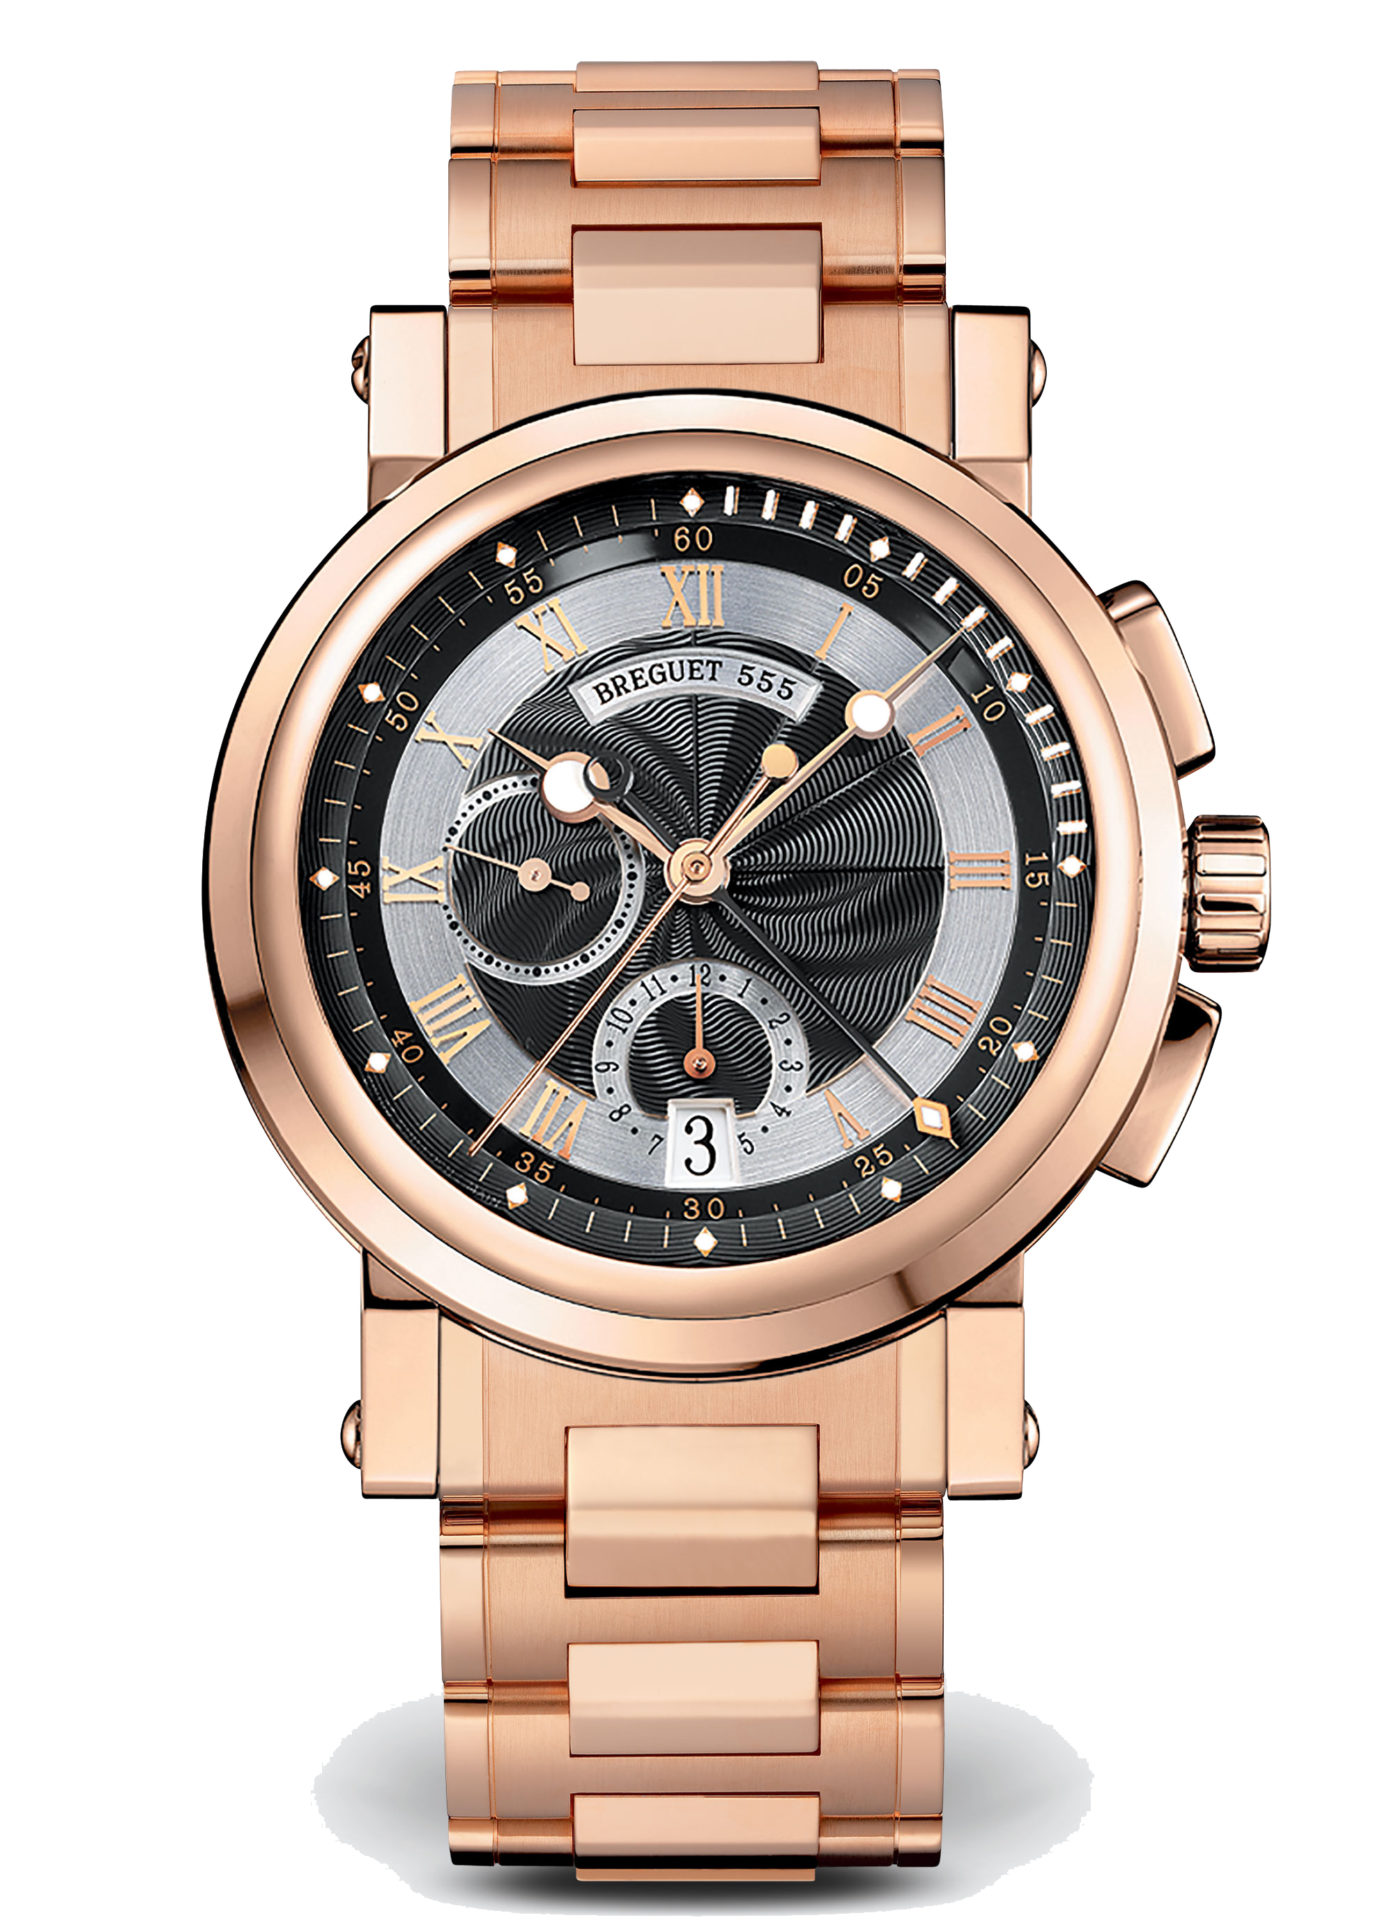 Breguet-La-Marine-5827-Hall-of-Time-5827br-z2-rm0